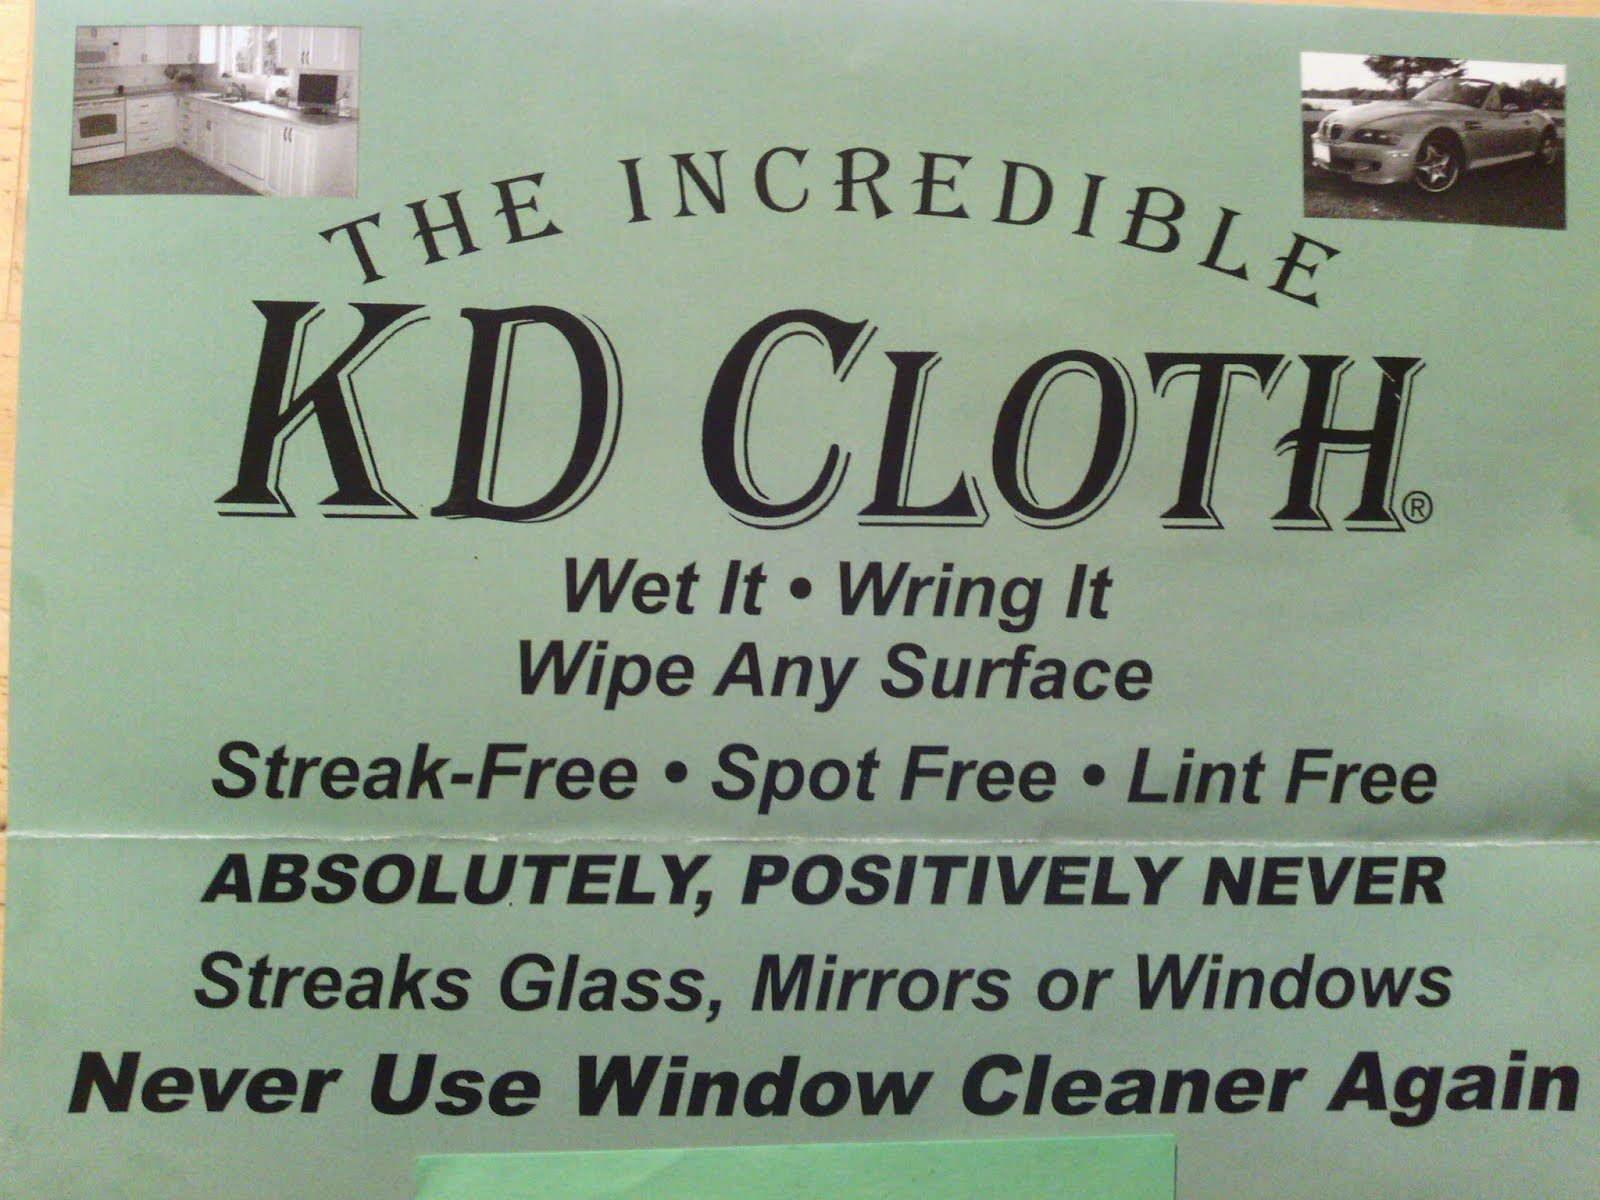 The INCREDIBLE KD Cloth..coming clean